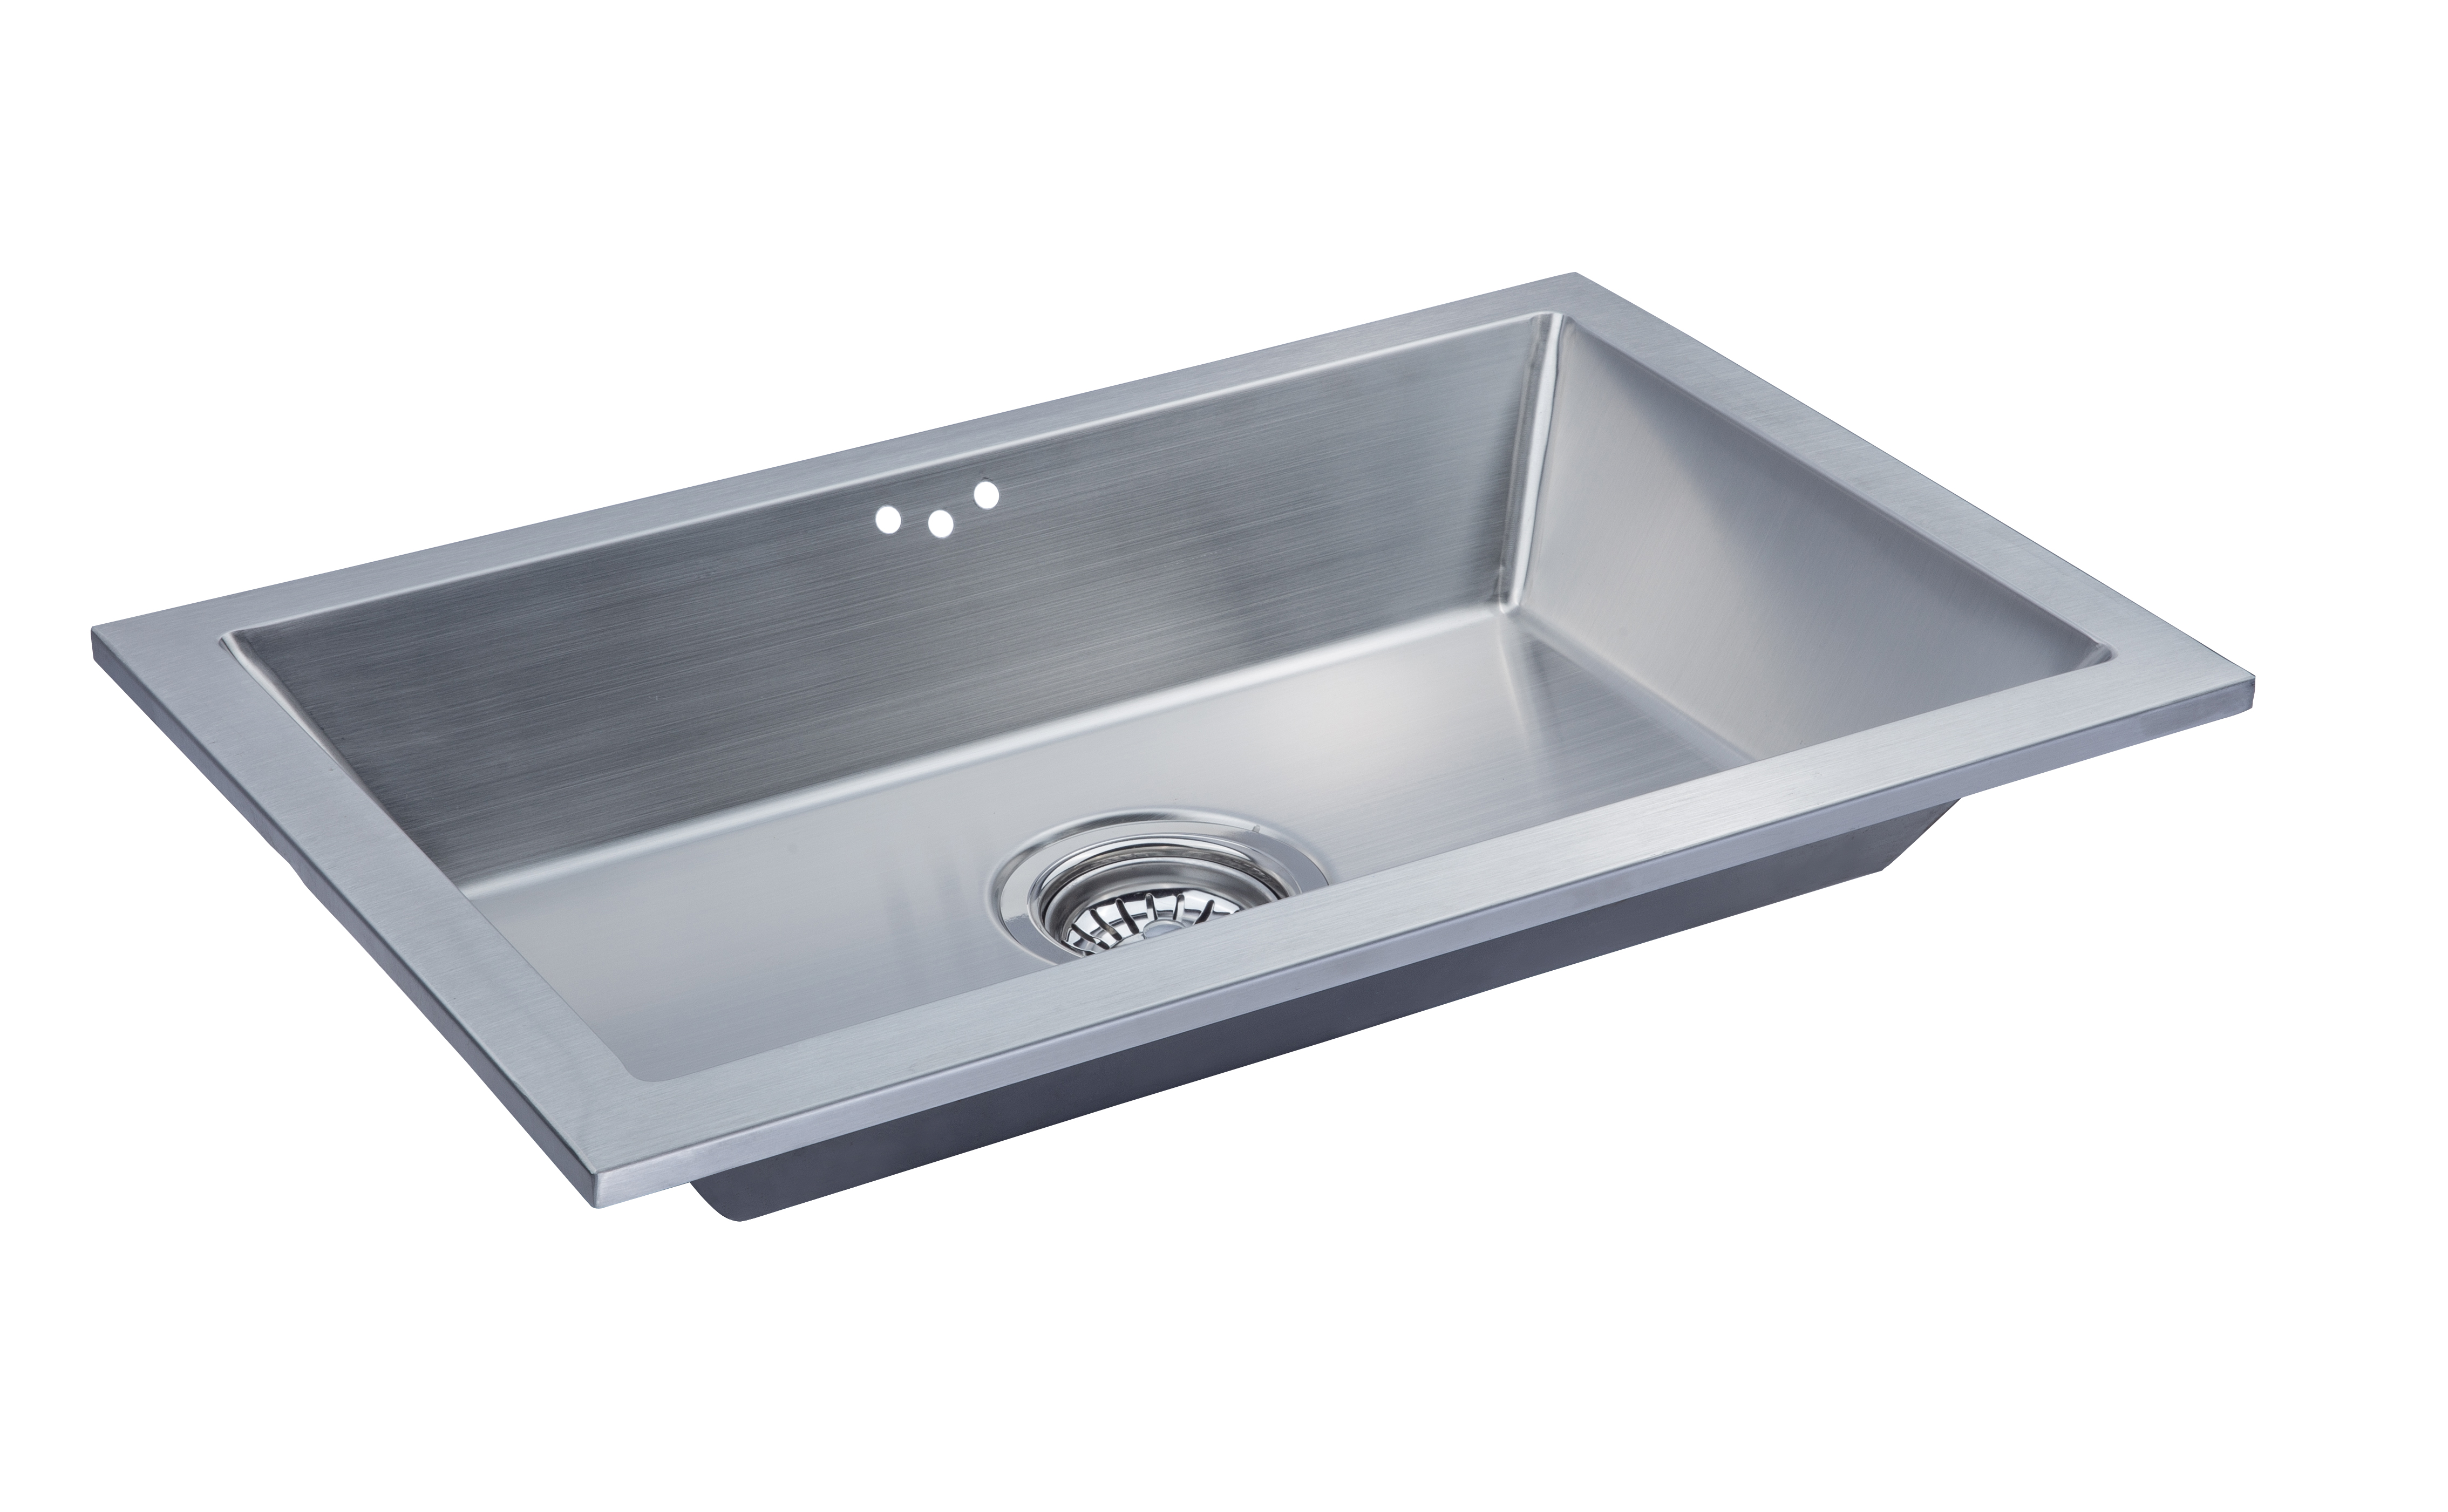 As360 24 X 15 63 4 18g Single Bowl Dual Mount Legend Stainless Steel Bathroom Sink